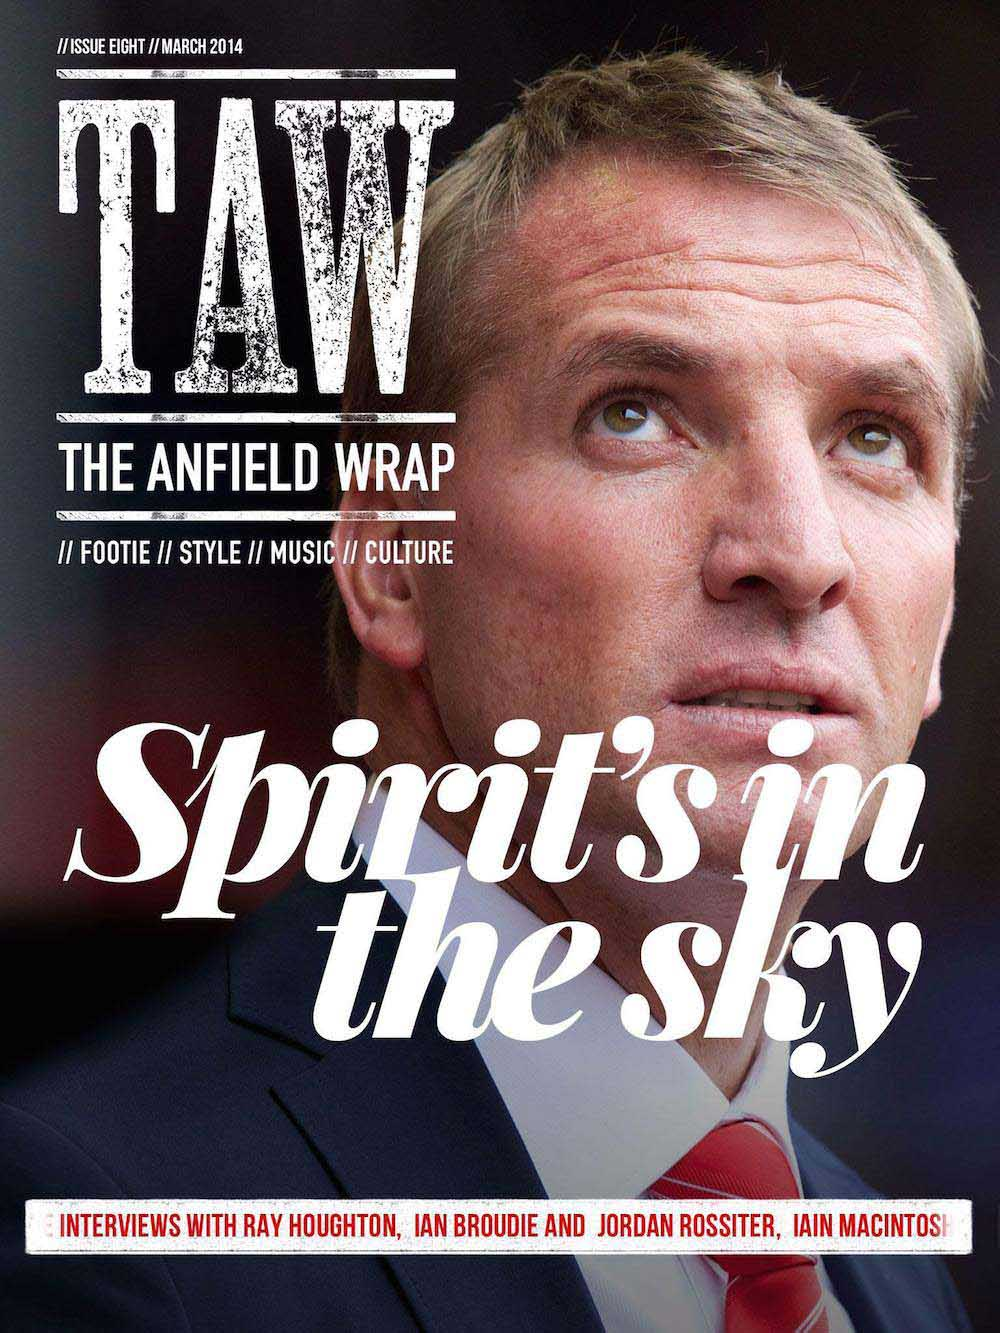 THE ANFIELD WRAP MAGAZINE #8: SPIRIT'S IN THE SKY